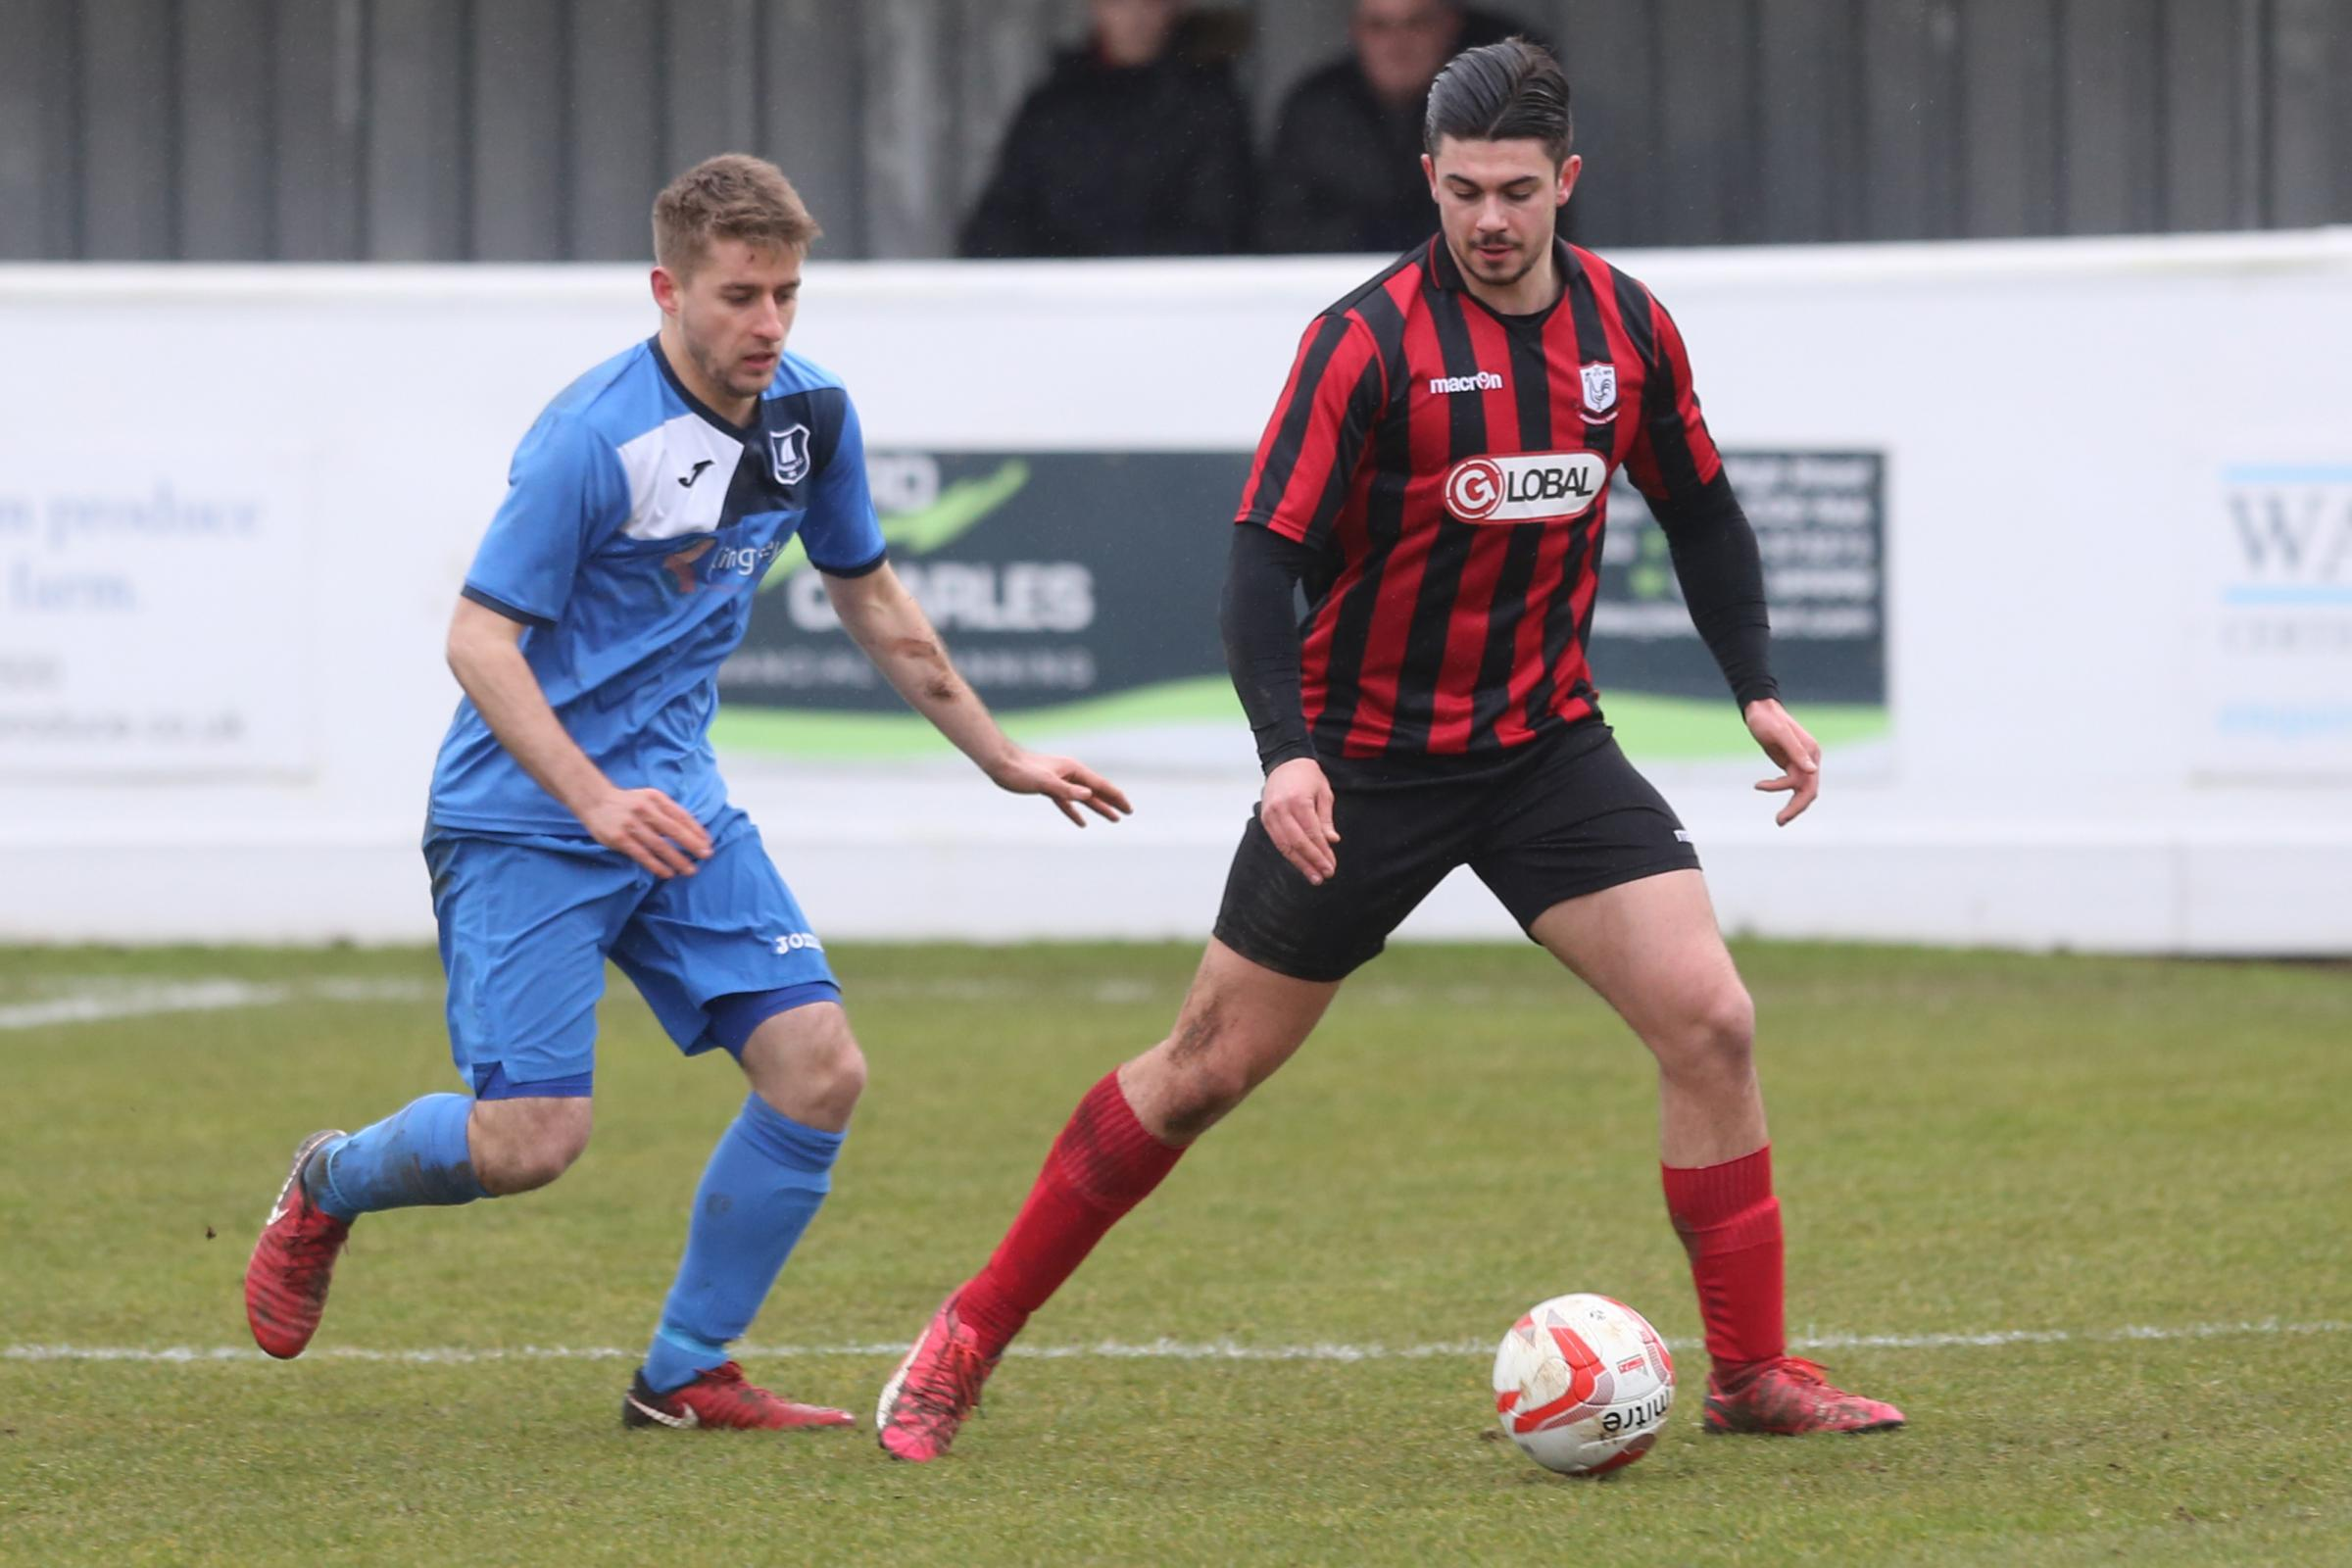 Tom Monk scored twice for Coggeshall against Wroxham Picture: Seana Hughes